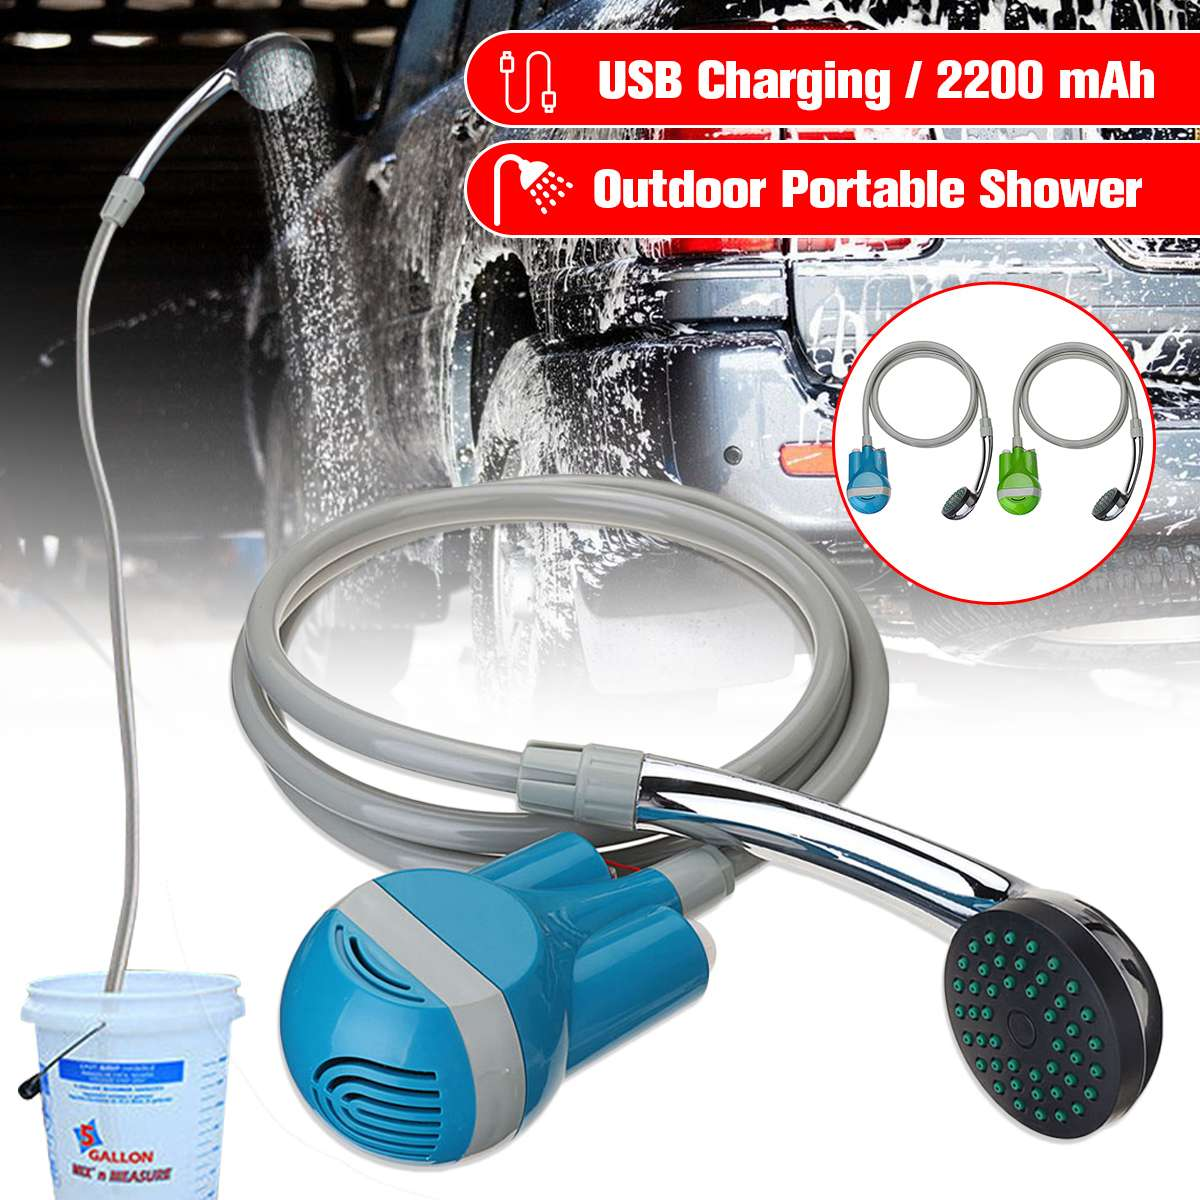 12V Car Washer Portable Camping Shower Wireless Car Shower DC 12V Pump Pressure Shower Outdoor Travel Caravan Van Pet Water Tank